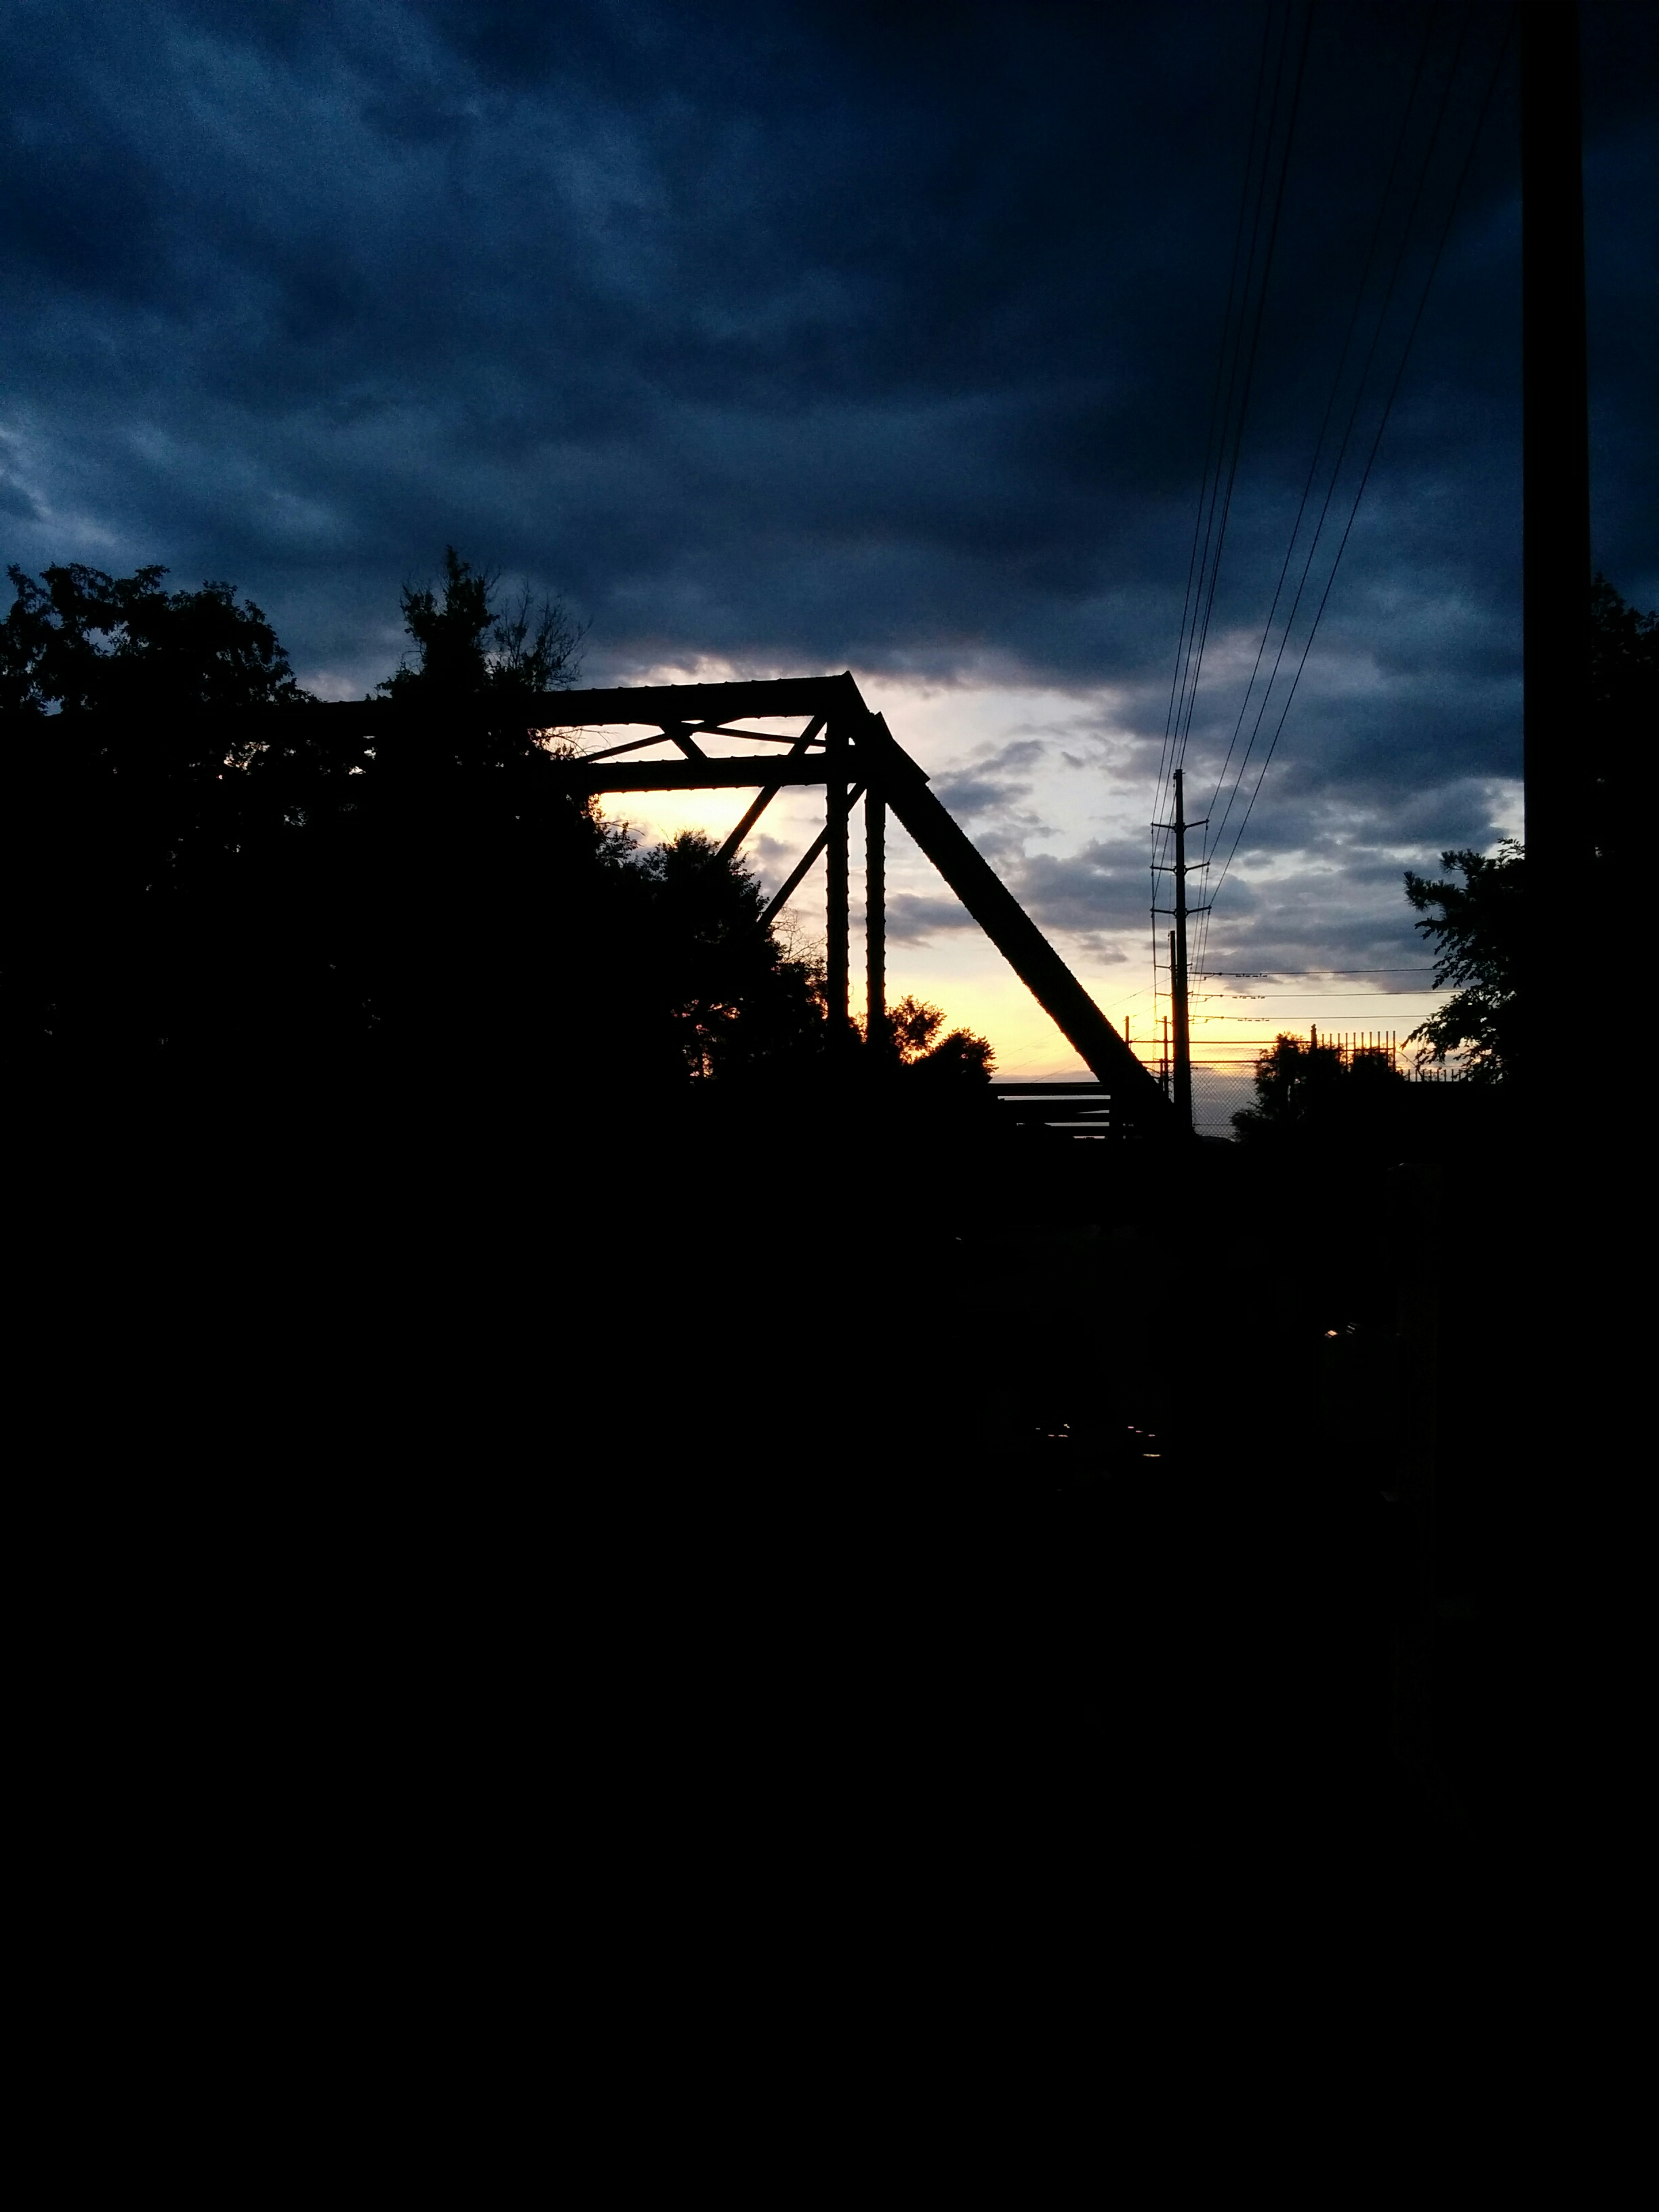 A nice abandoned railway bridge in front of the sunset.